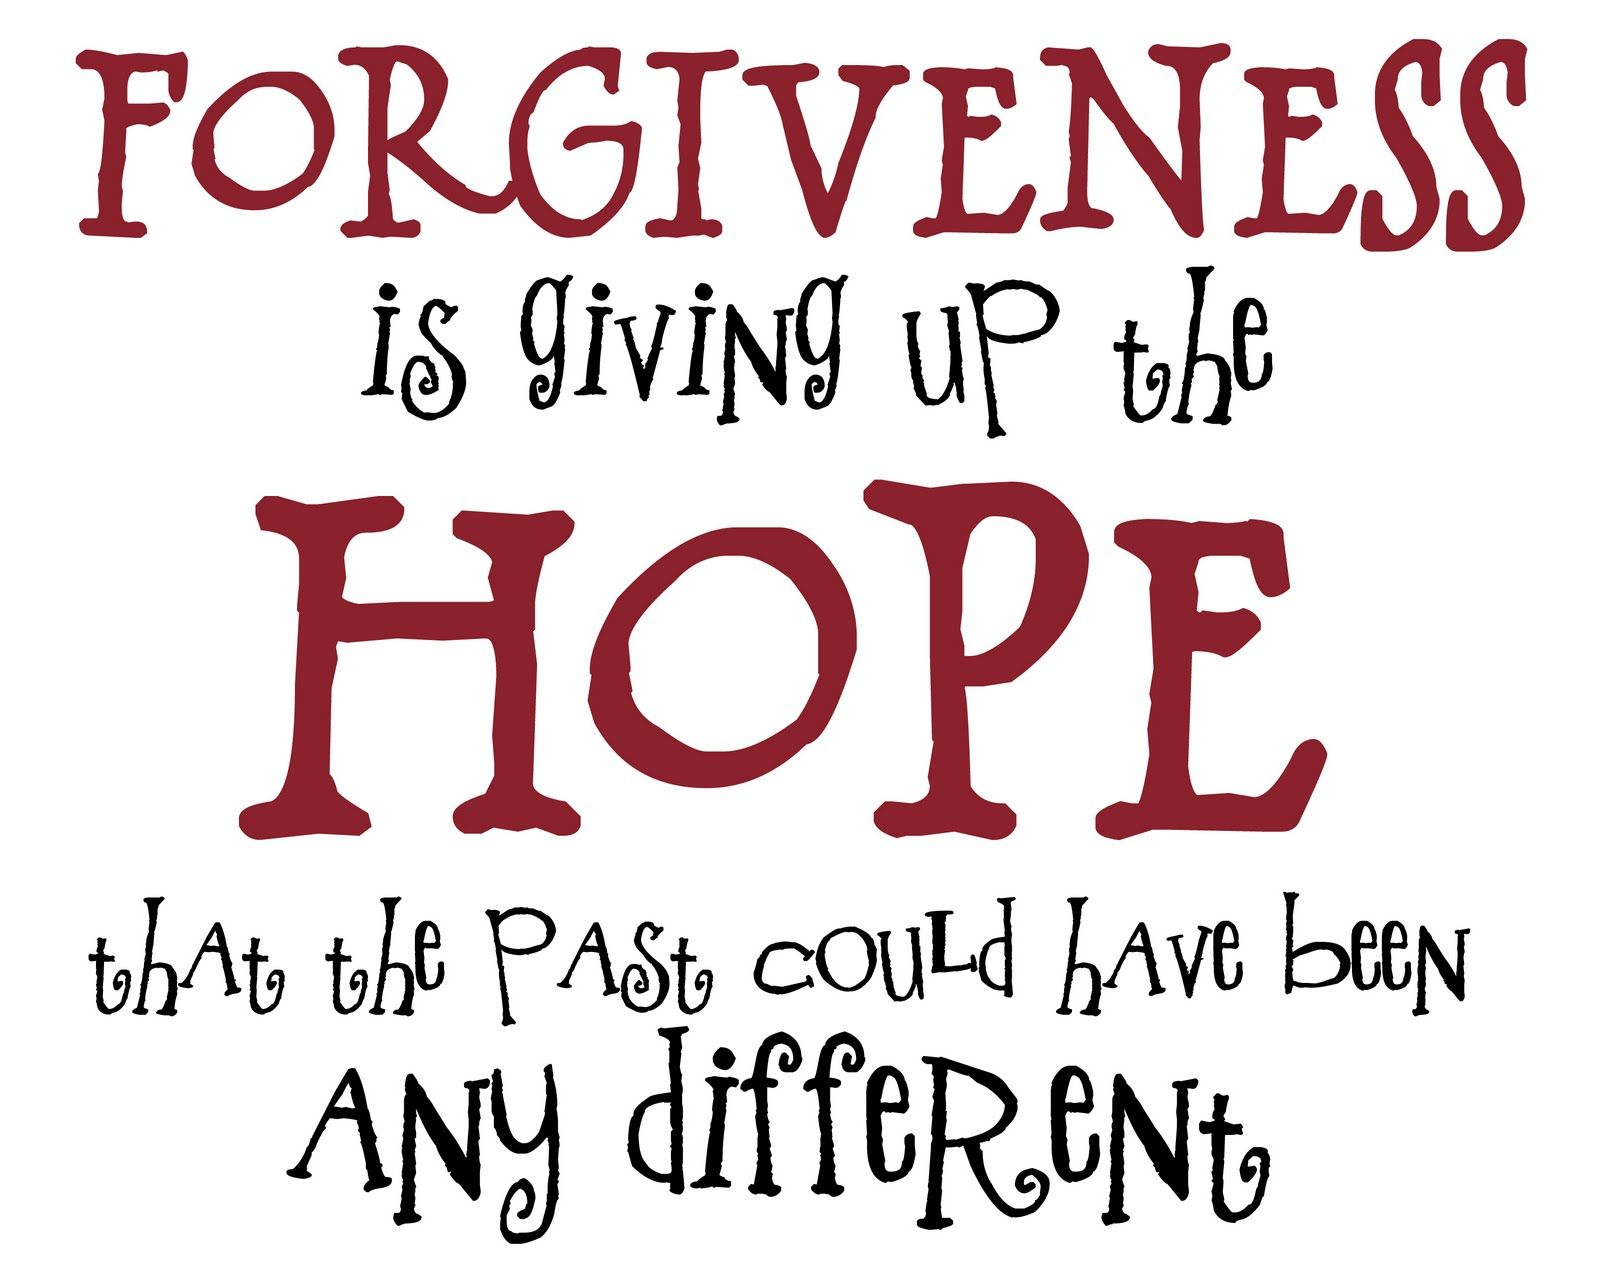 Quotes On Forgiveness Quotes On Forgiveness And Forgiving  Junk In Their Trunk